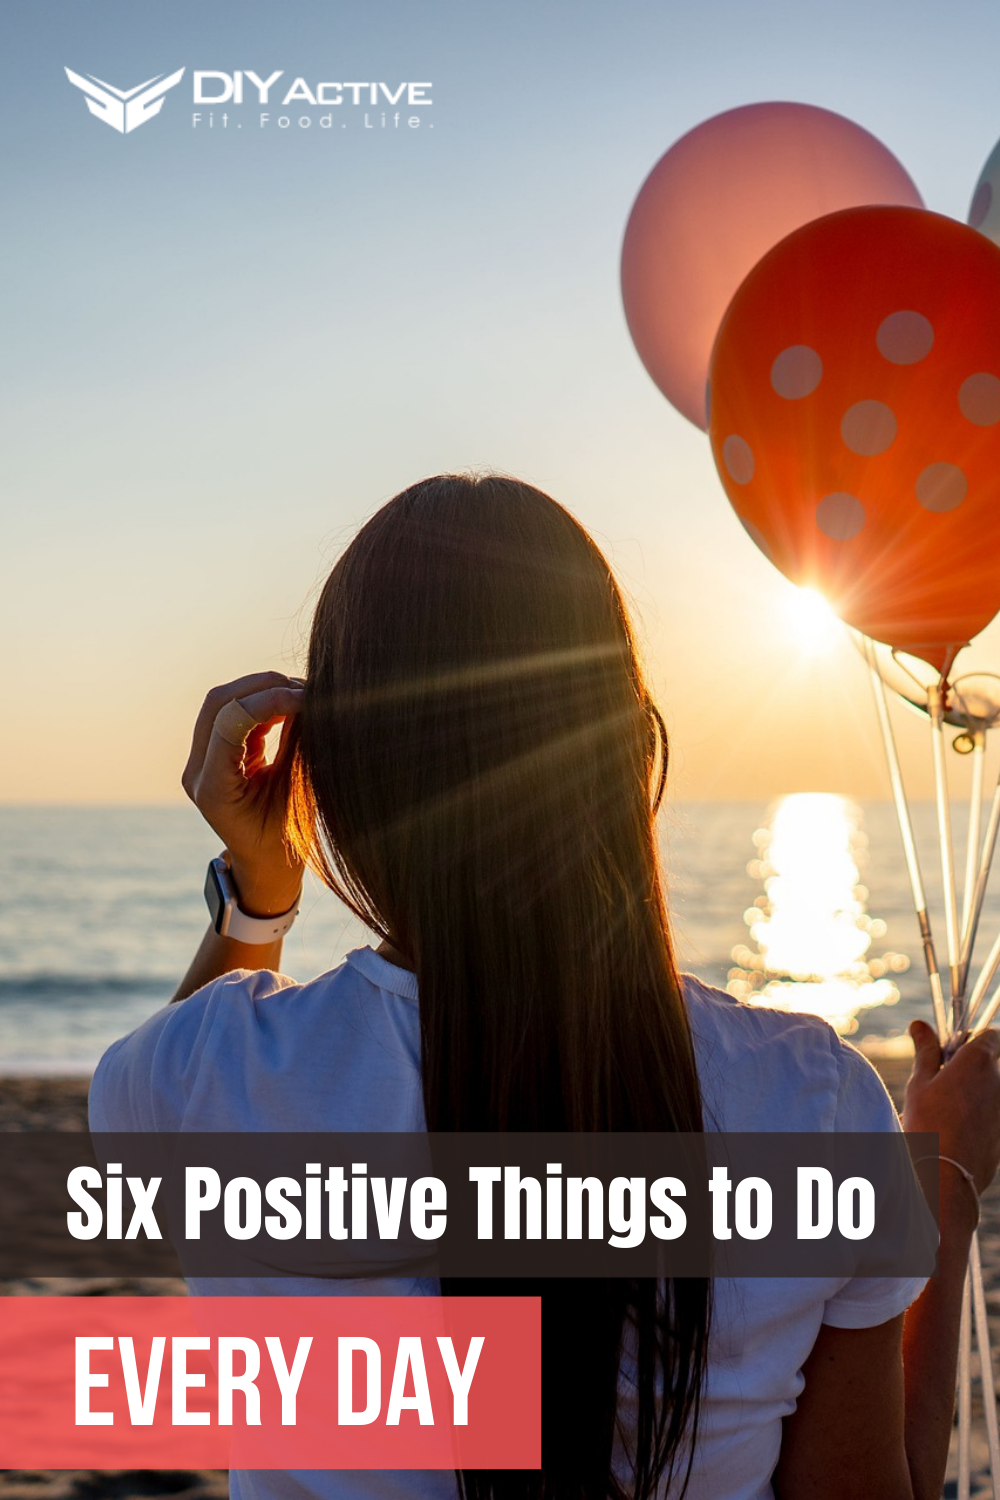 Six Positive Things to Do Every Day